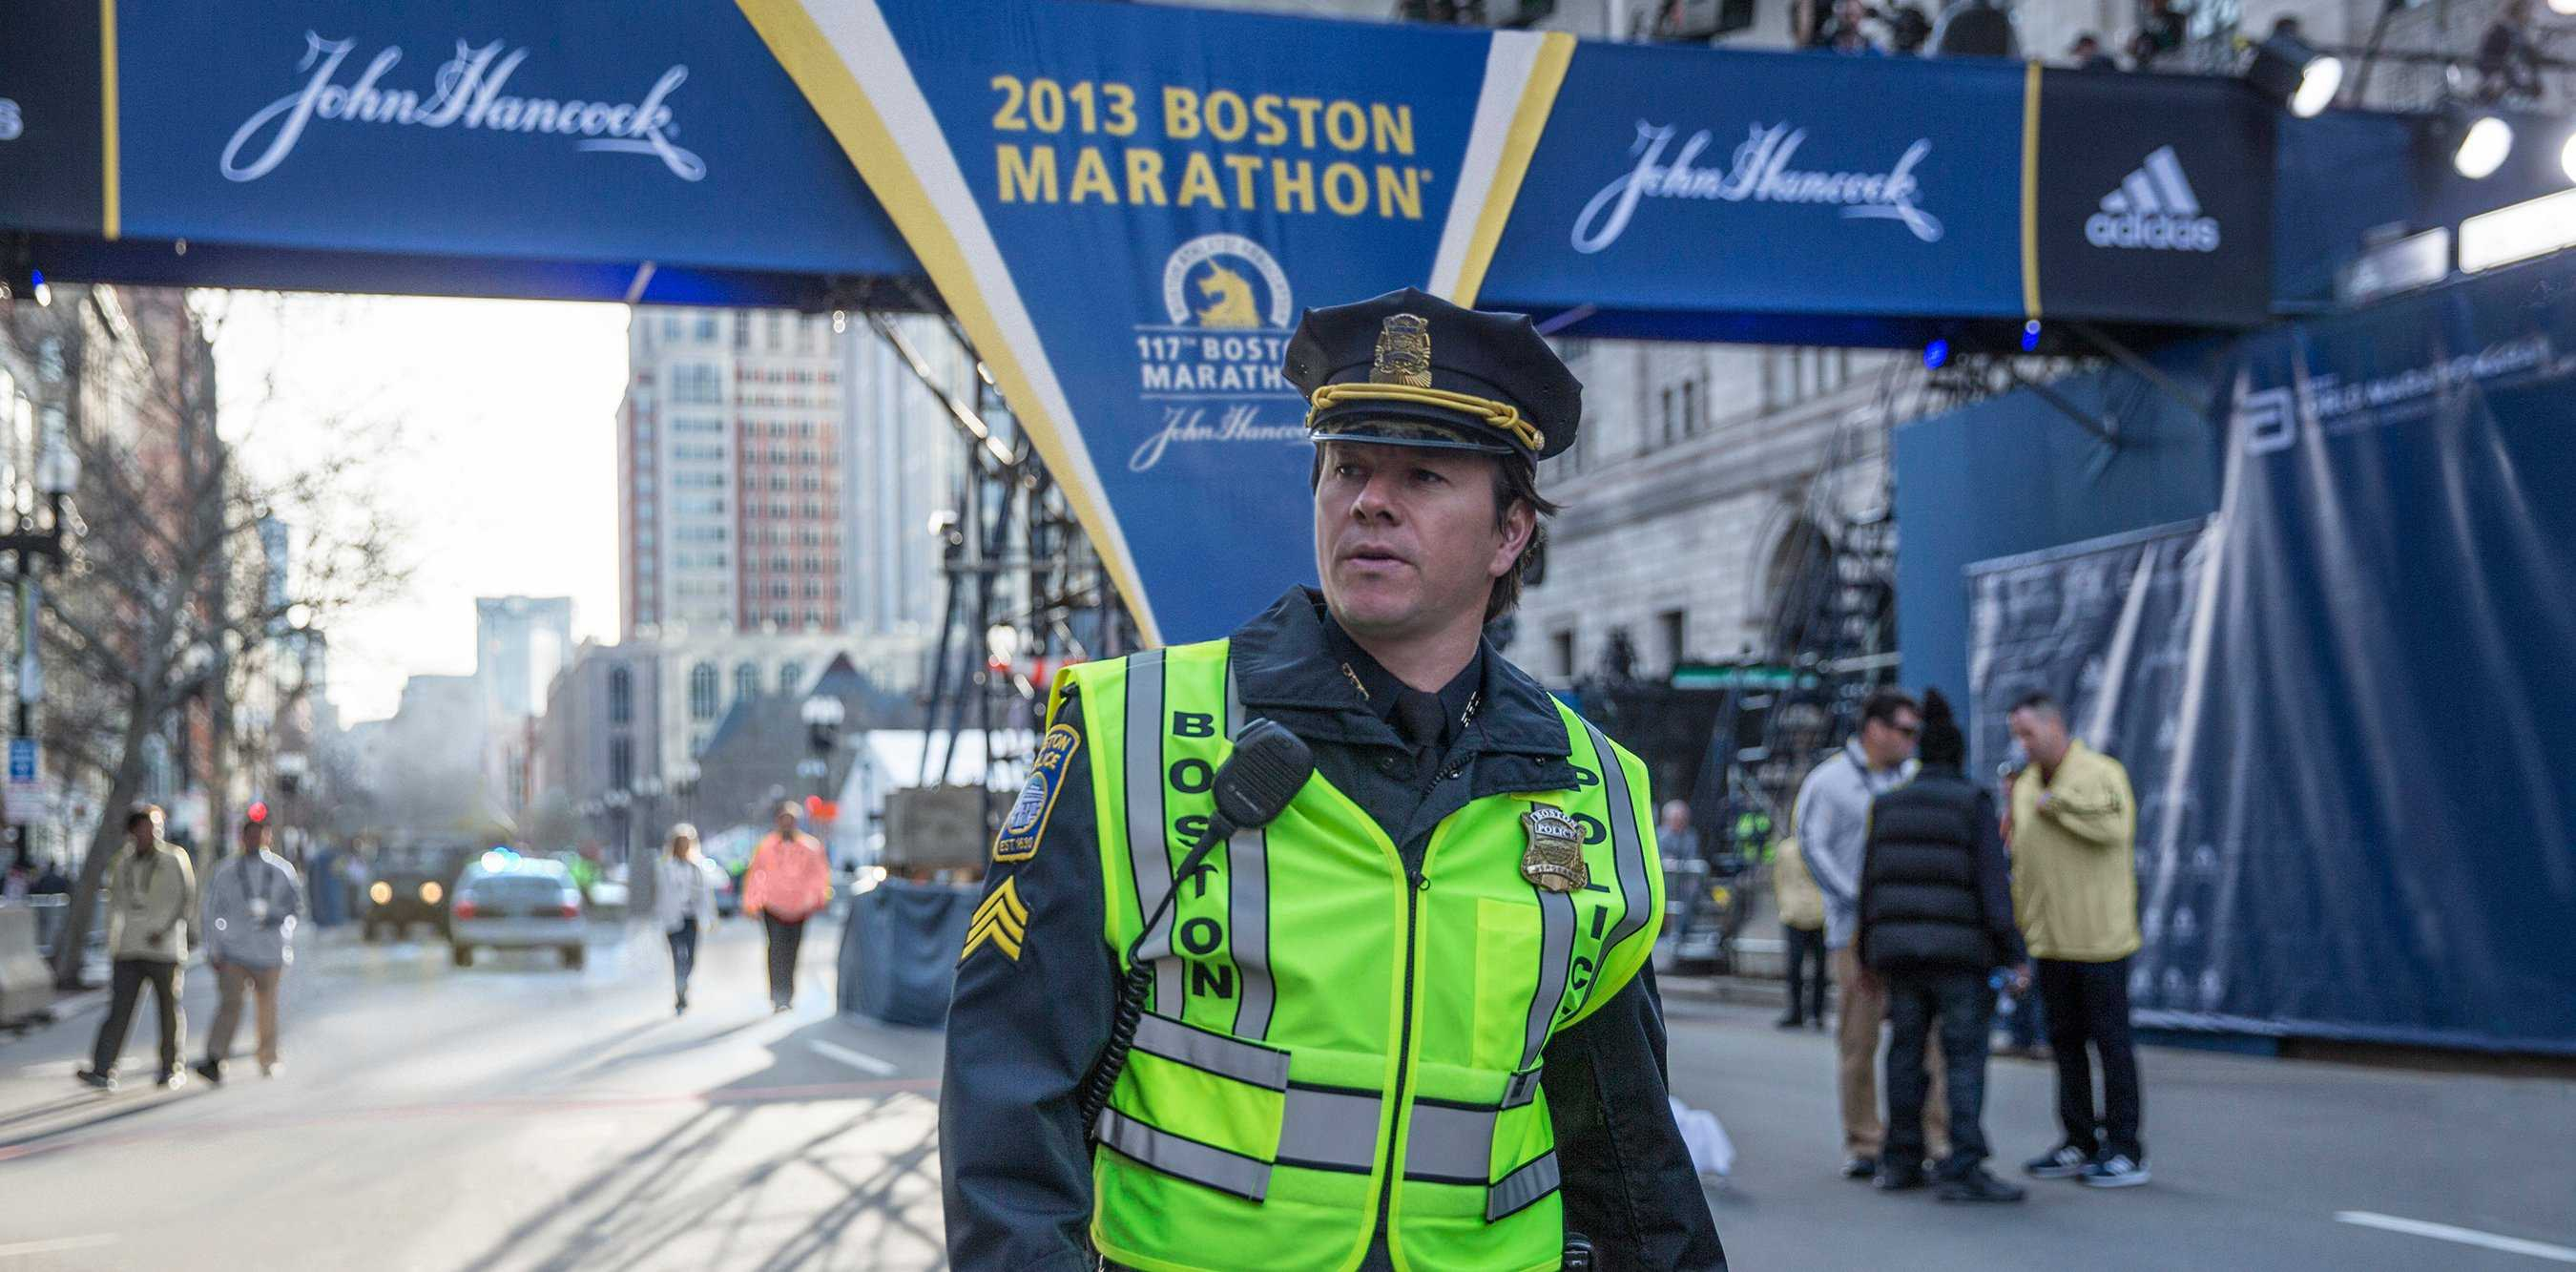 Patriots Day Offers Respectful Reminder of Marathon Bombings